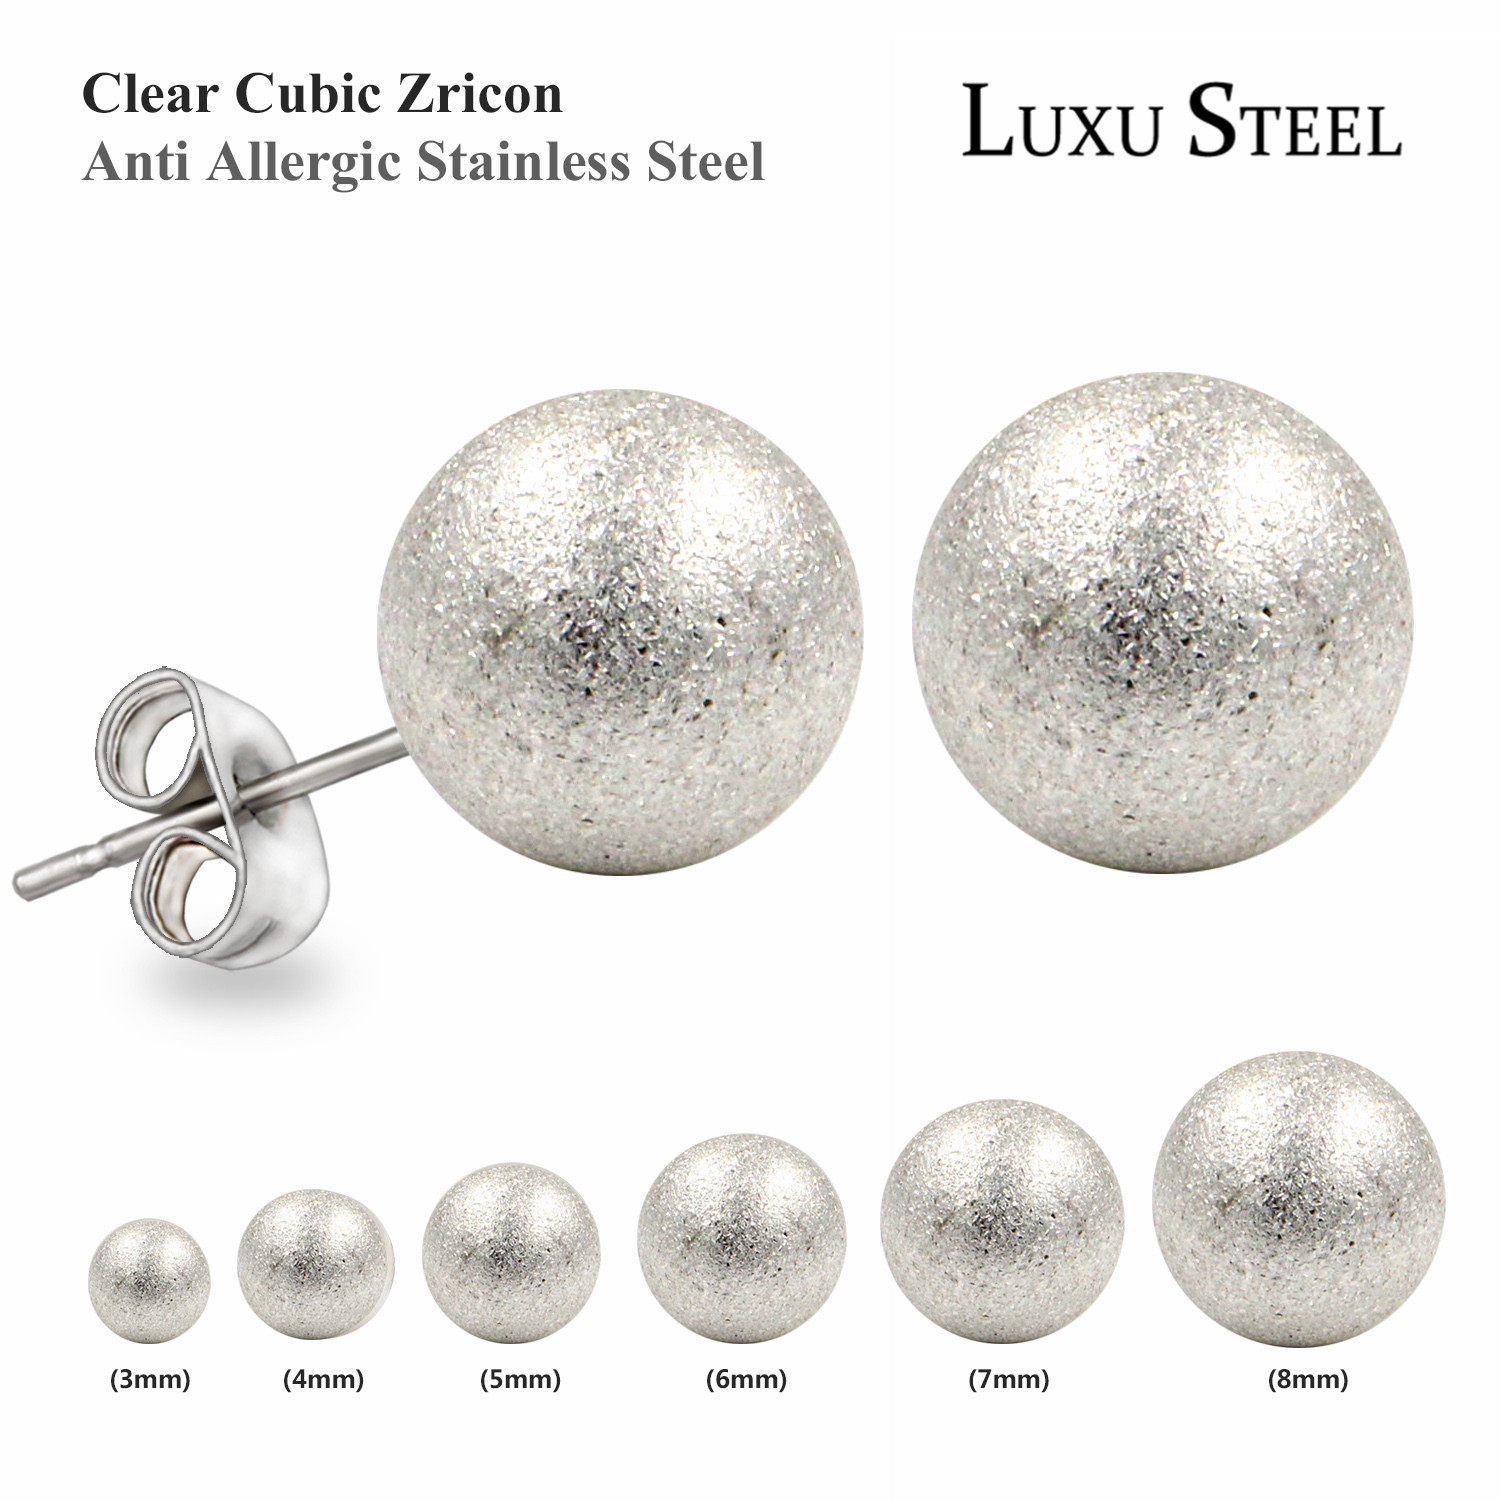 New 6 Pair Silver Plated Ball Stud Earrings Stainless Steel Cartilage Earrings Frosted Ear Pins Piercing Studs Earring for Women(China (Mainland))